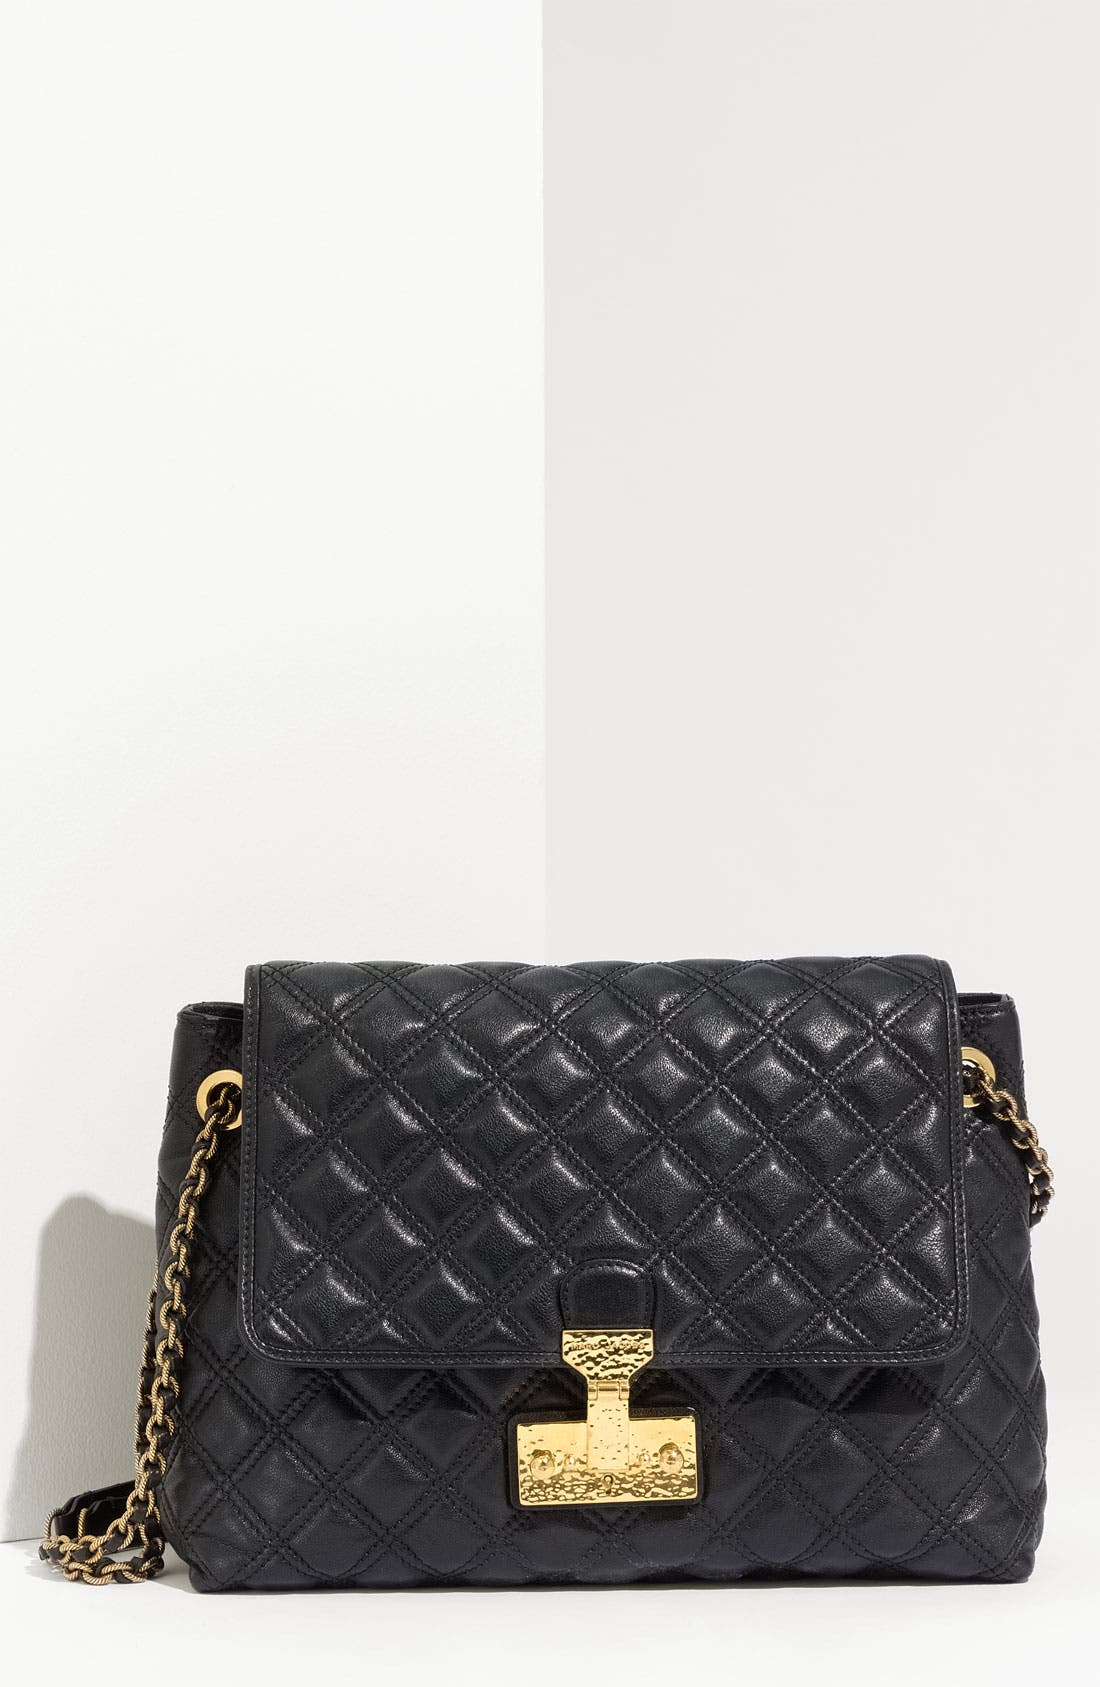 Main Image - MARC JACOBS 'Baroque - Extra Large' Leather Shoulder Bag